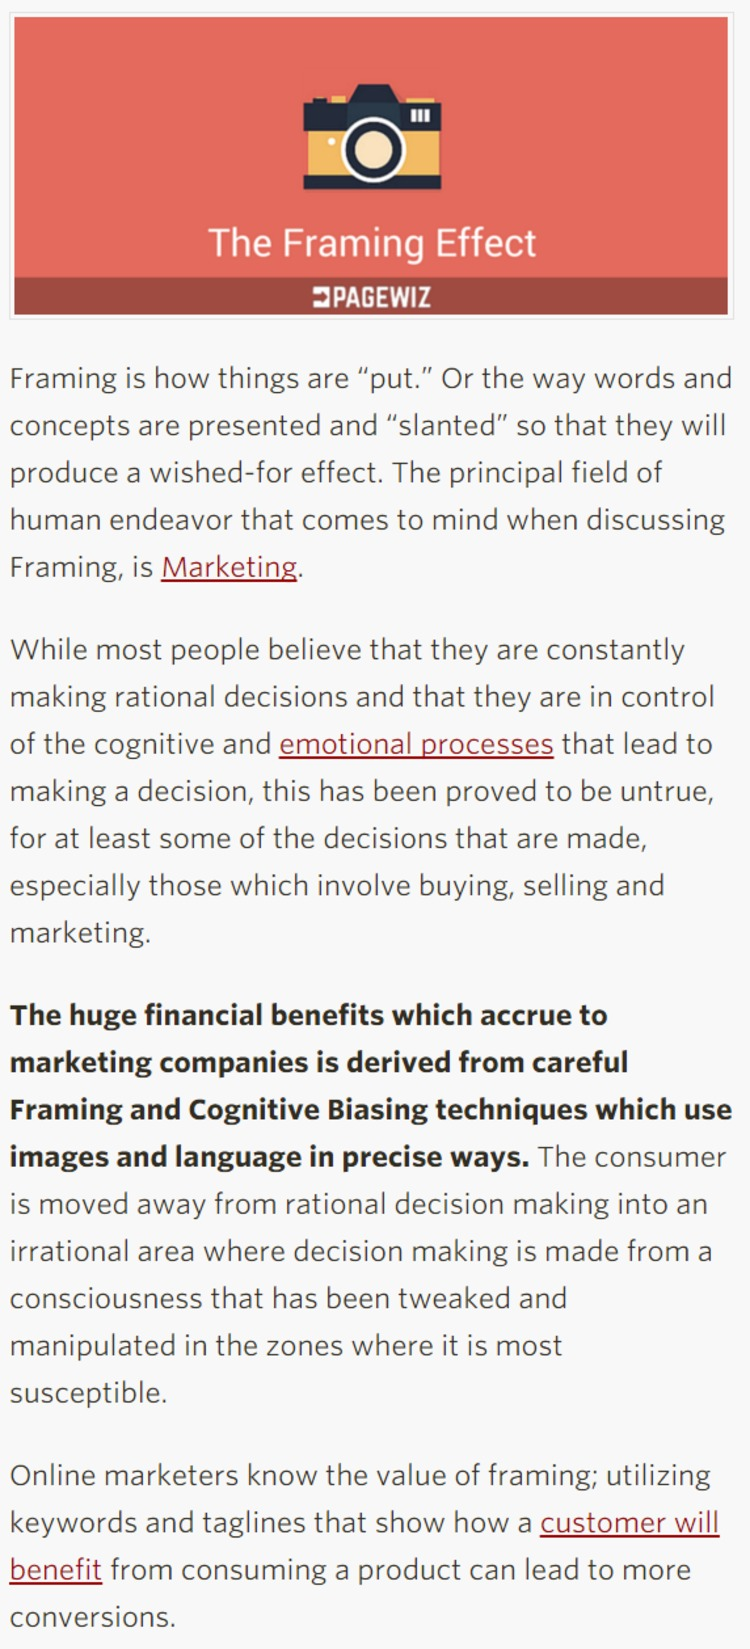 How to use The Framing Effect in Marketing Campaigns - Pagewiz | The Marketing Technology Alert | Scoop.it